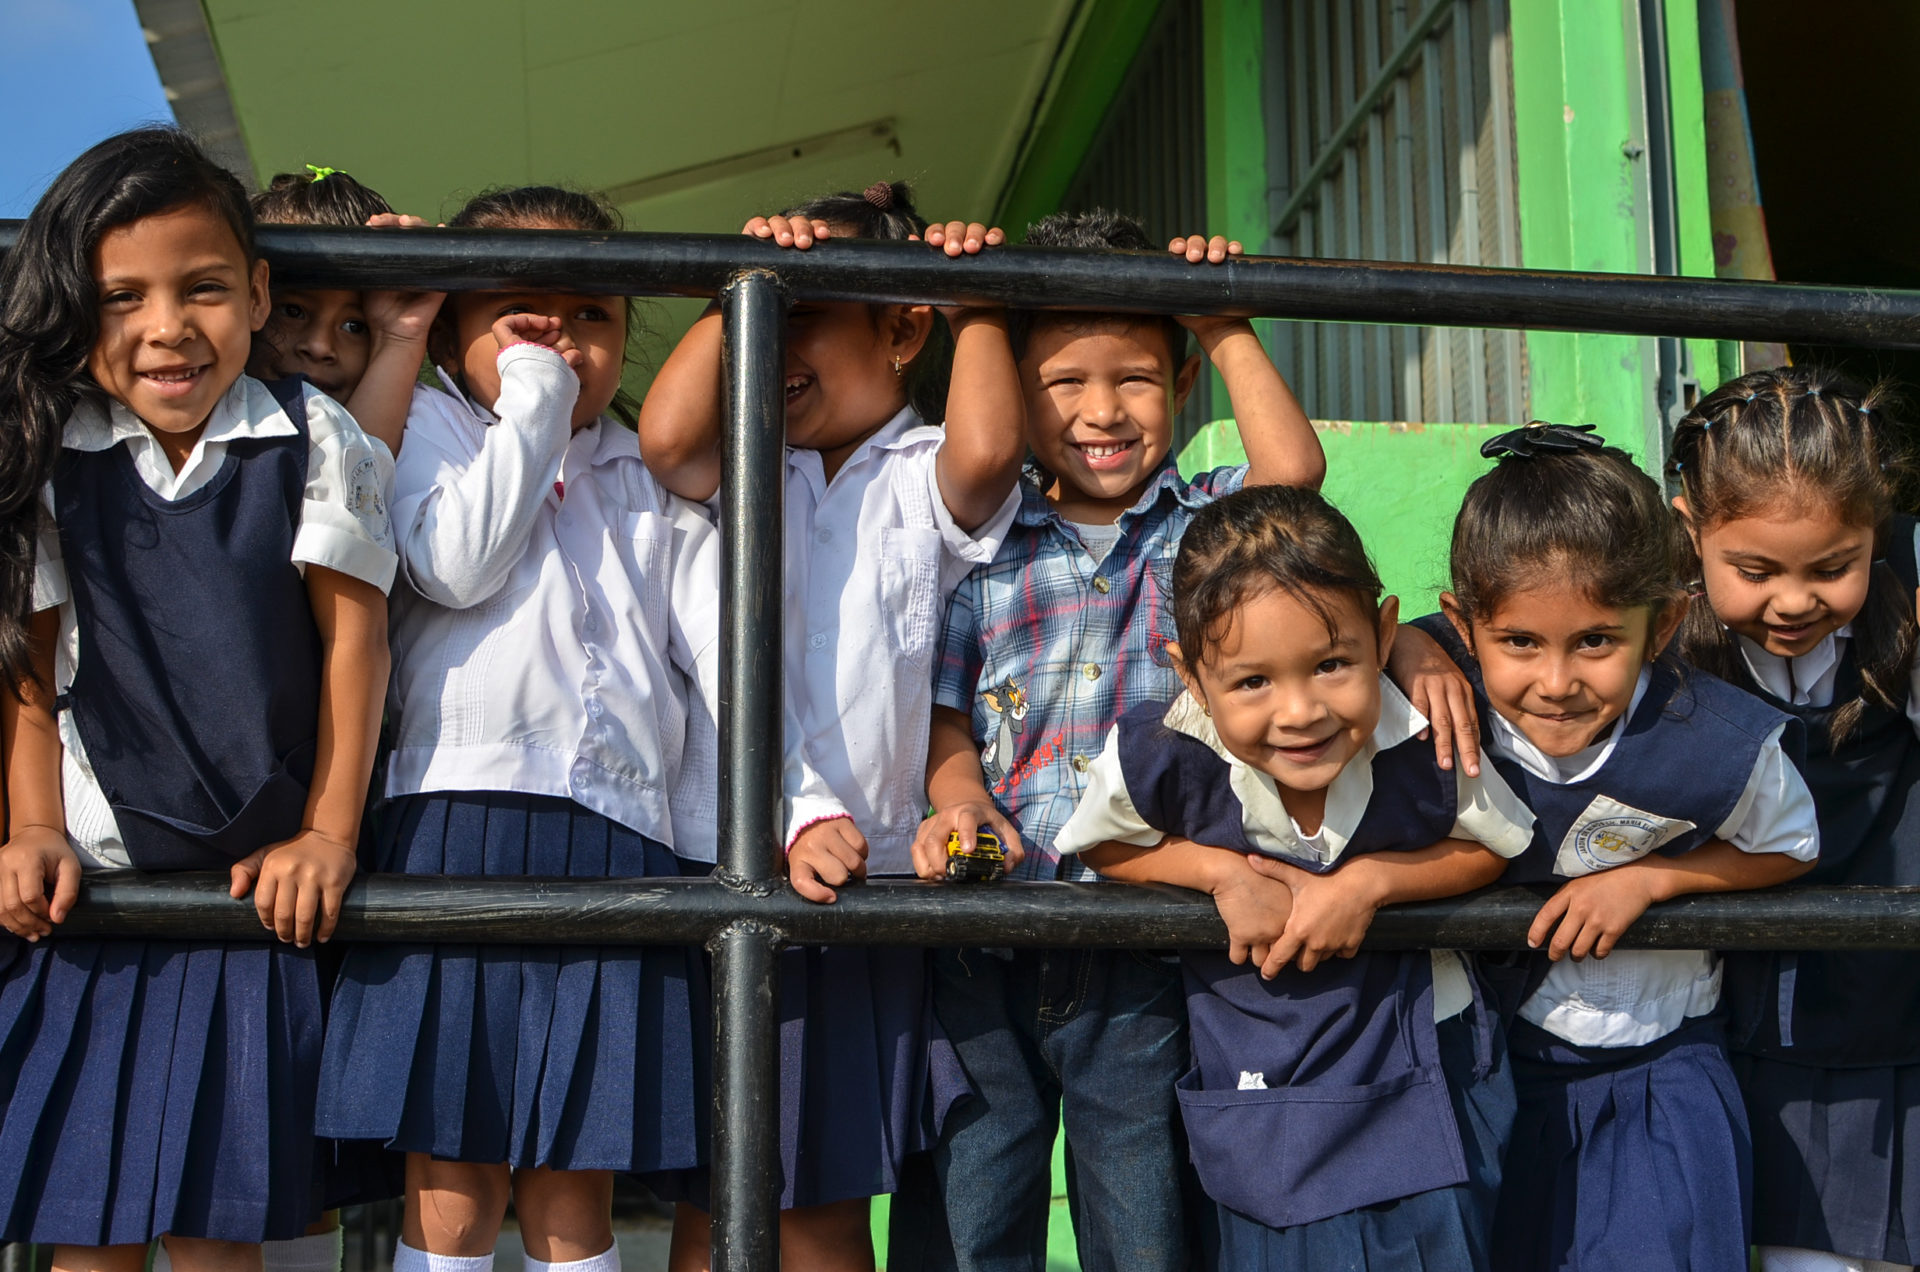 school children stand at a railing smiling